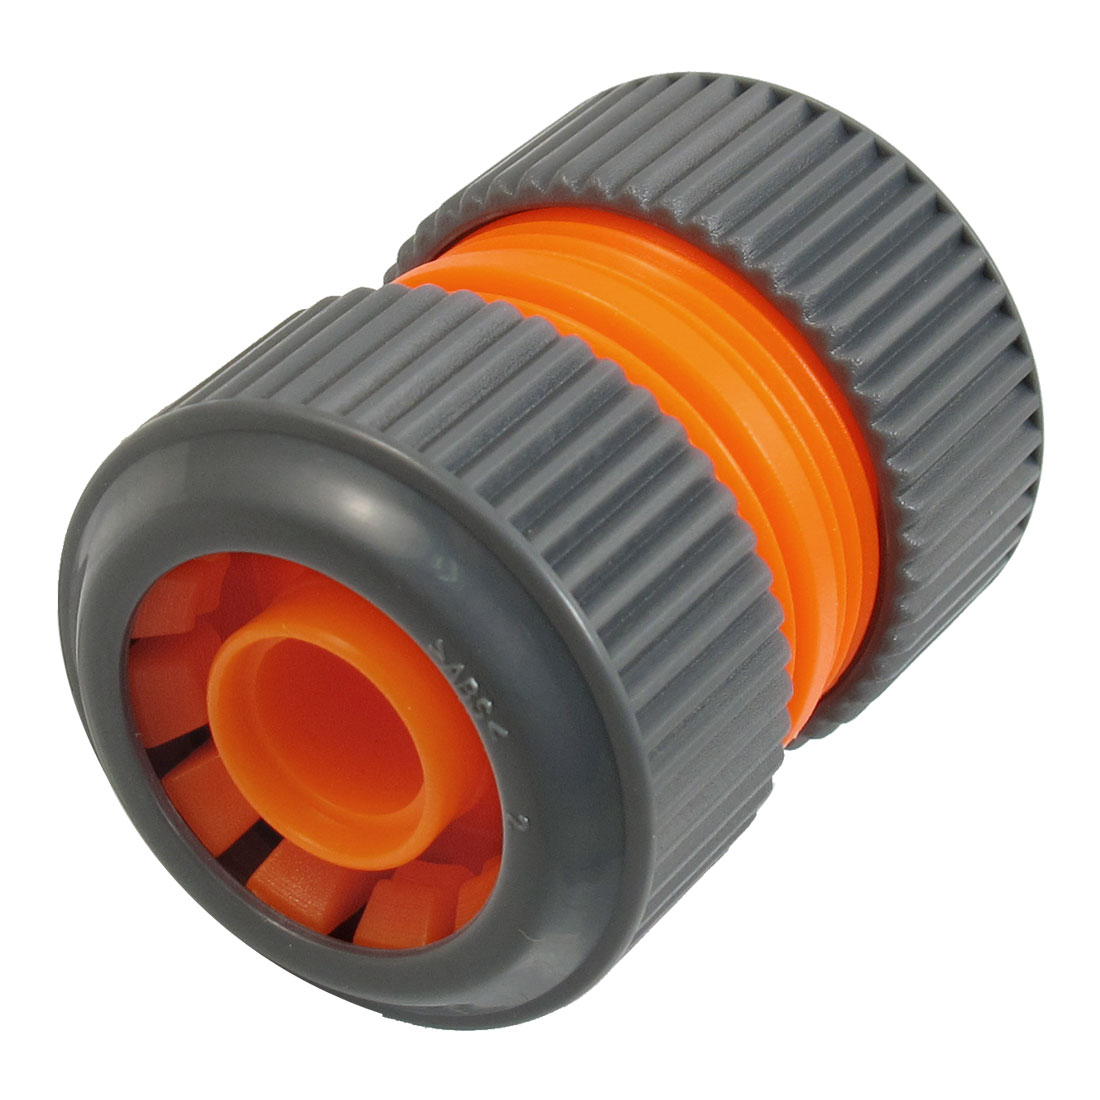 16mm x 24mm Water Hose Quick Connector Coupling Disconnect Gray Orange